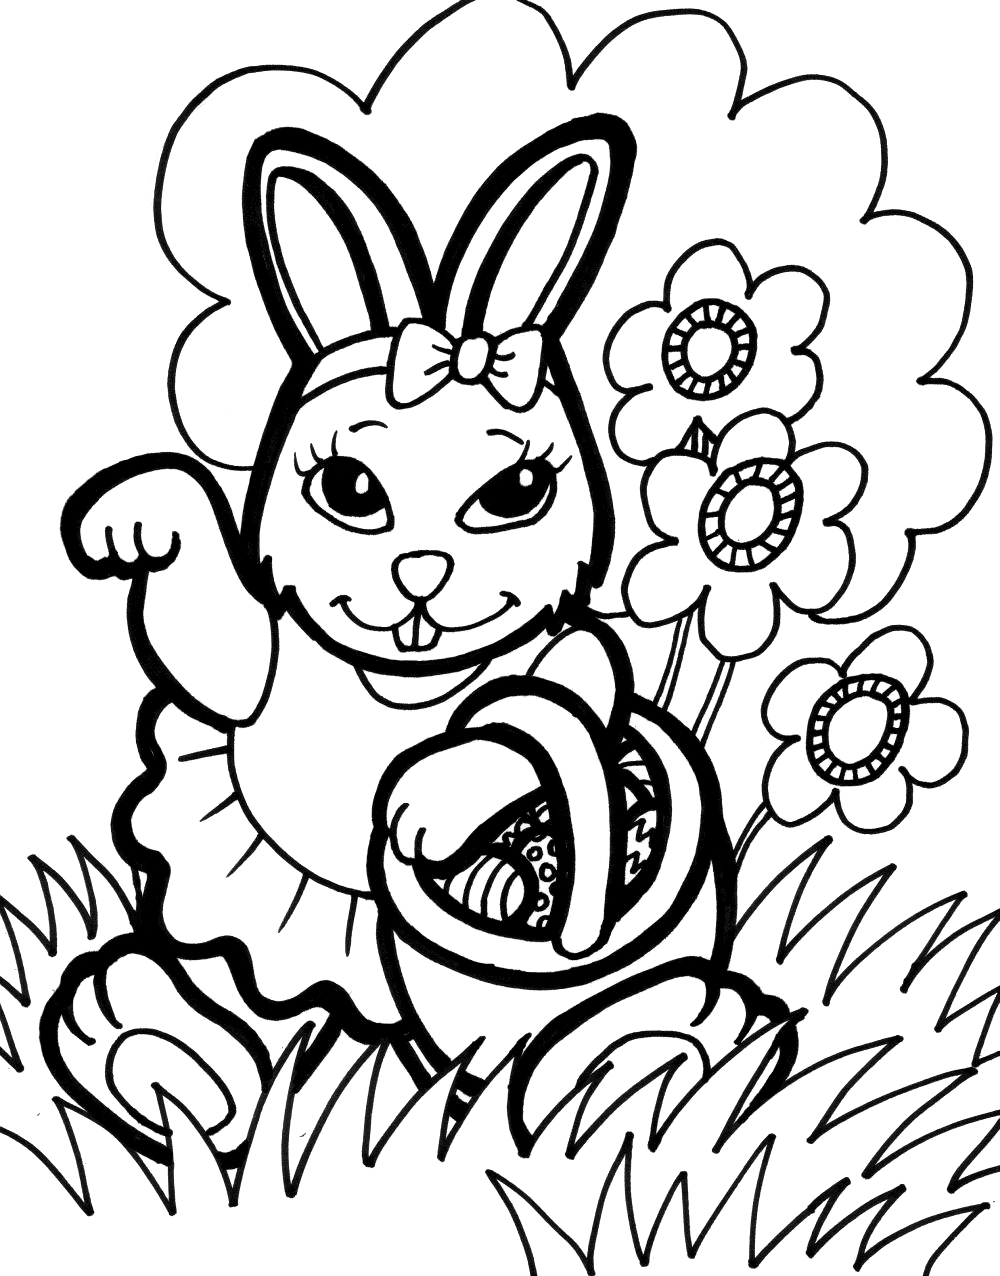 Easter Bunny Face Drawing at GetDrawings.com | Free for personal use ...